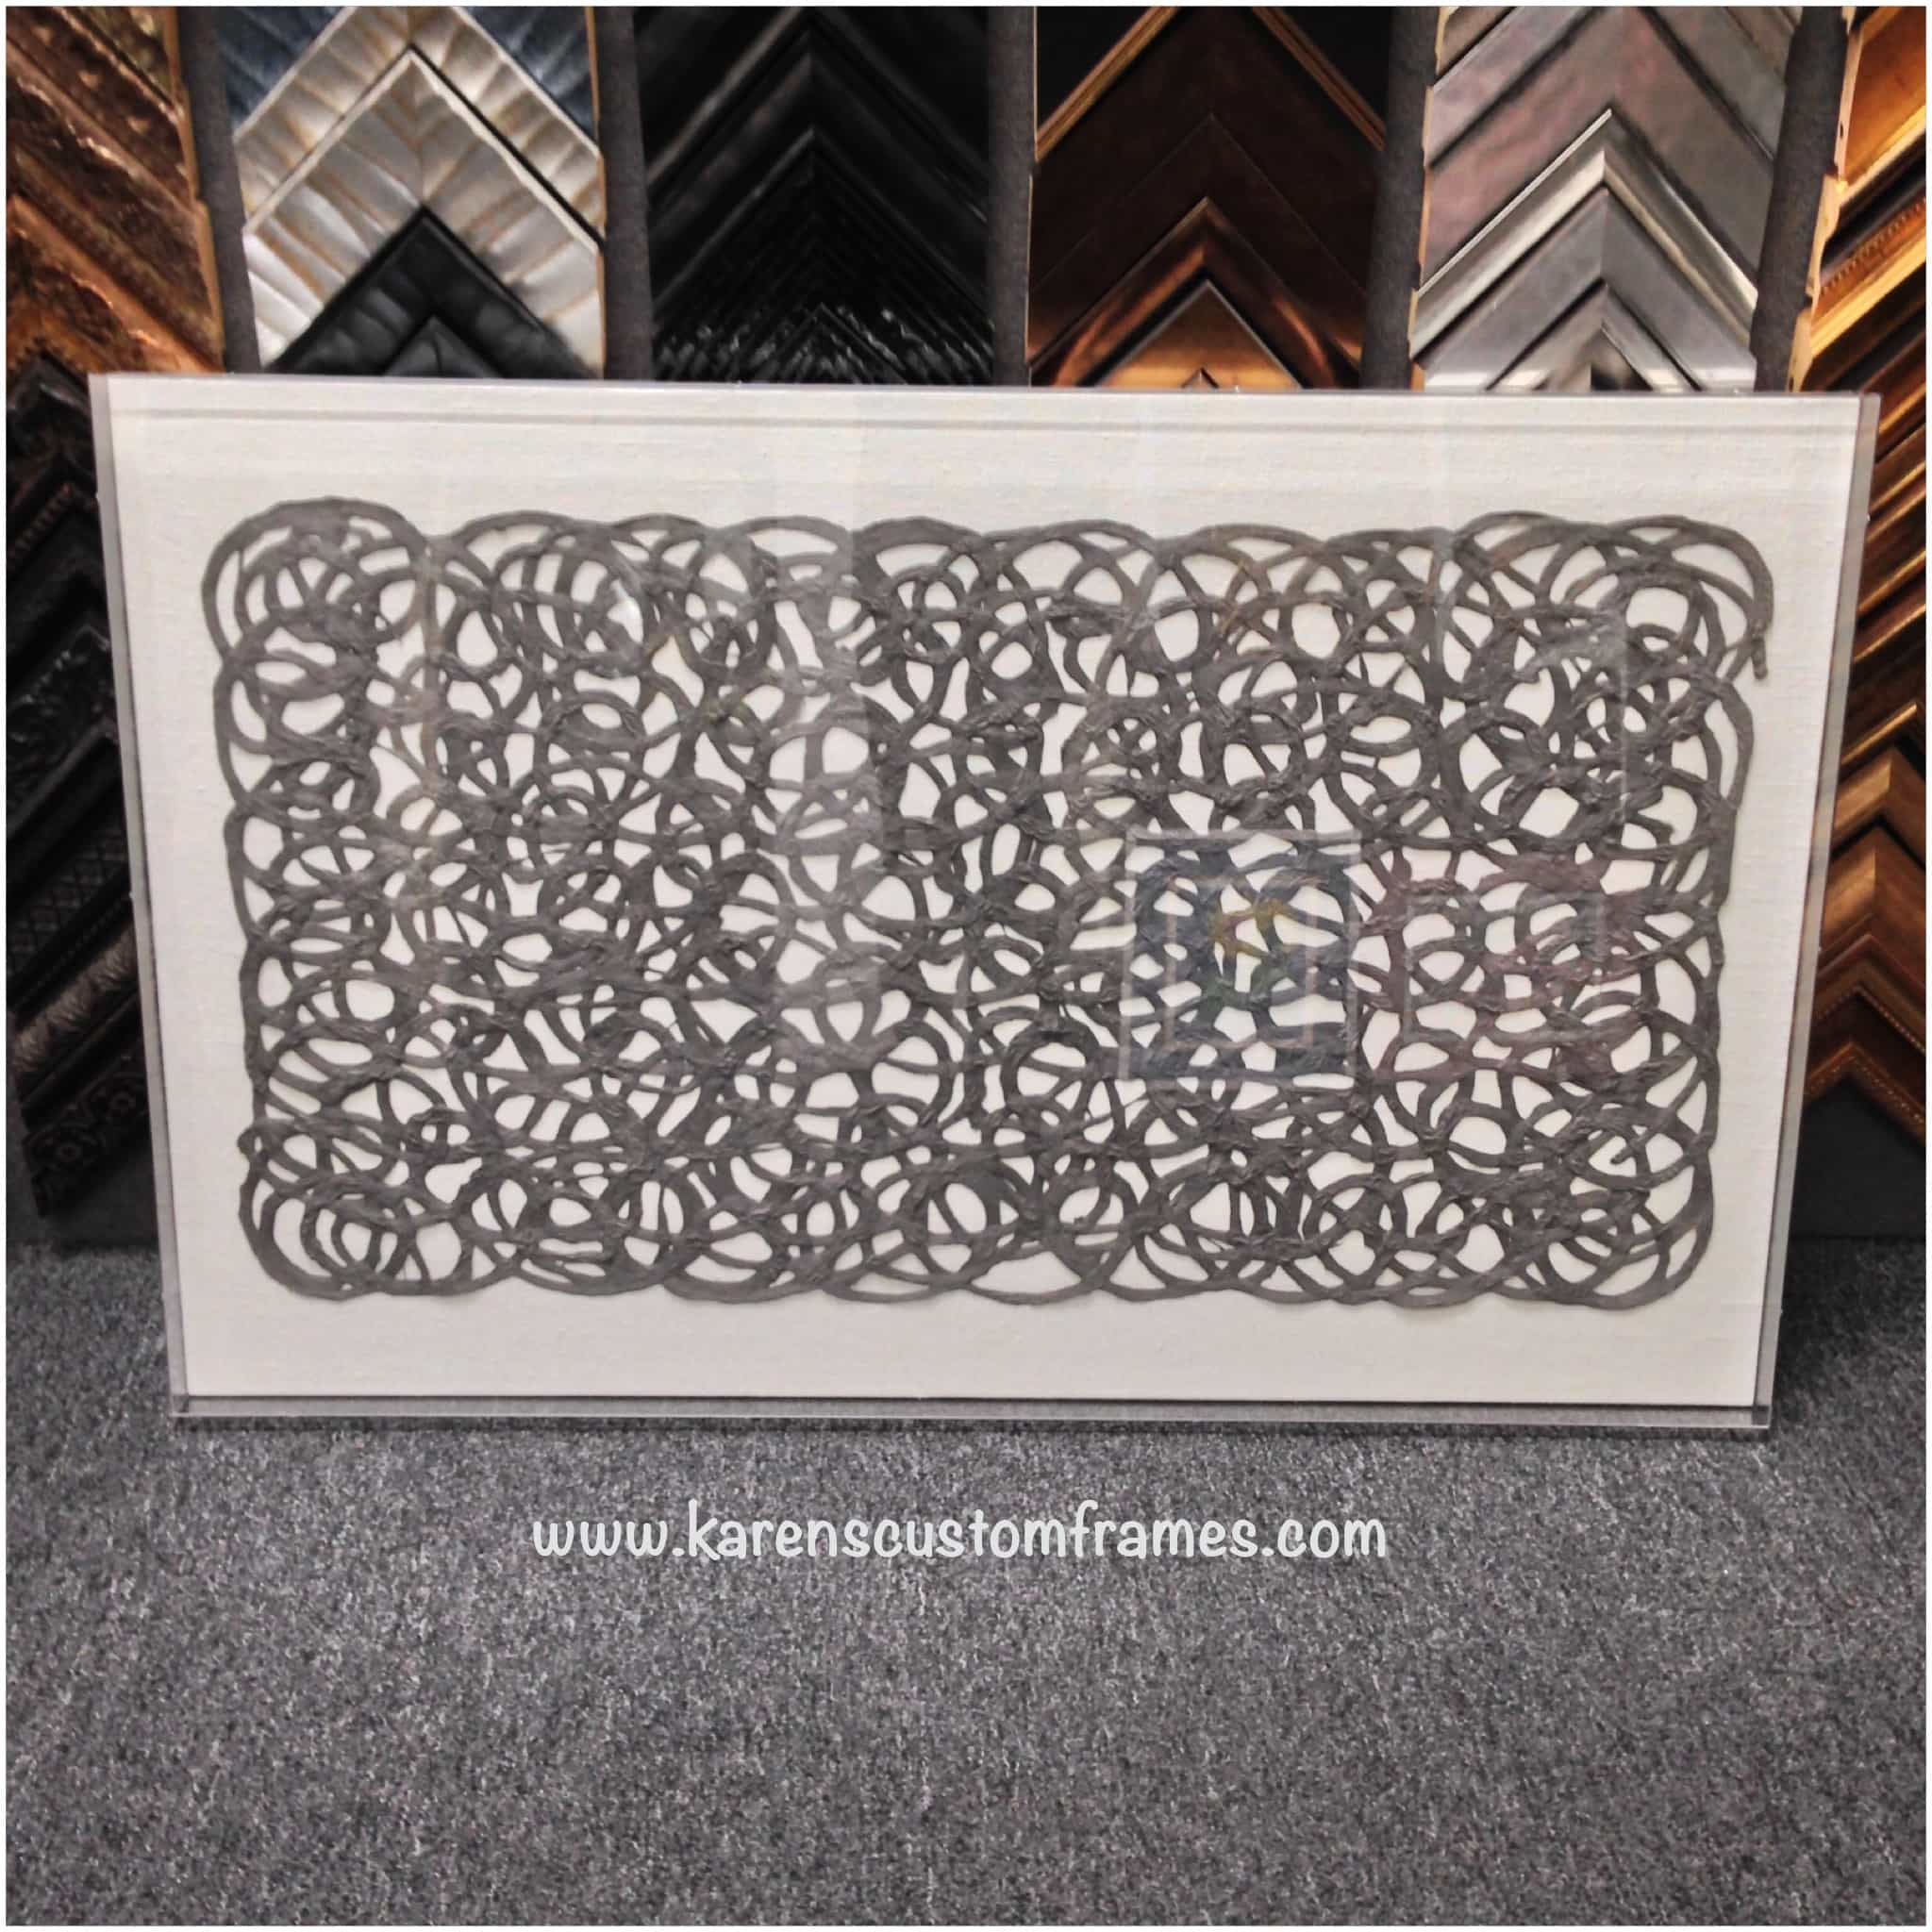 Acrylic Box | Custom Design and Framing by Karen's Detail Custom Frames